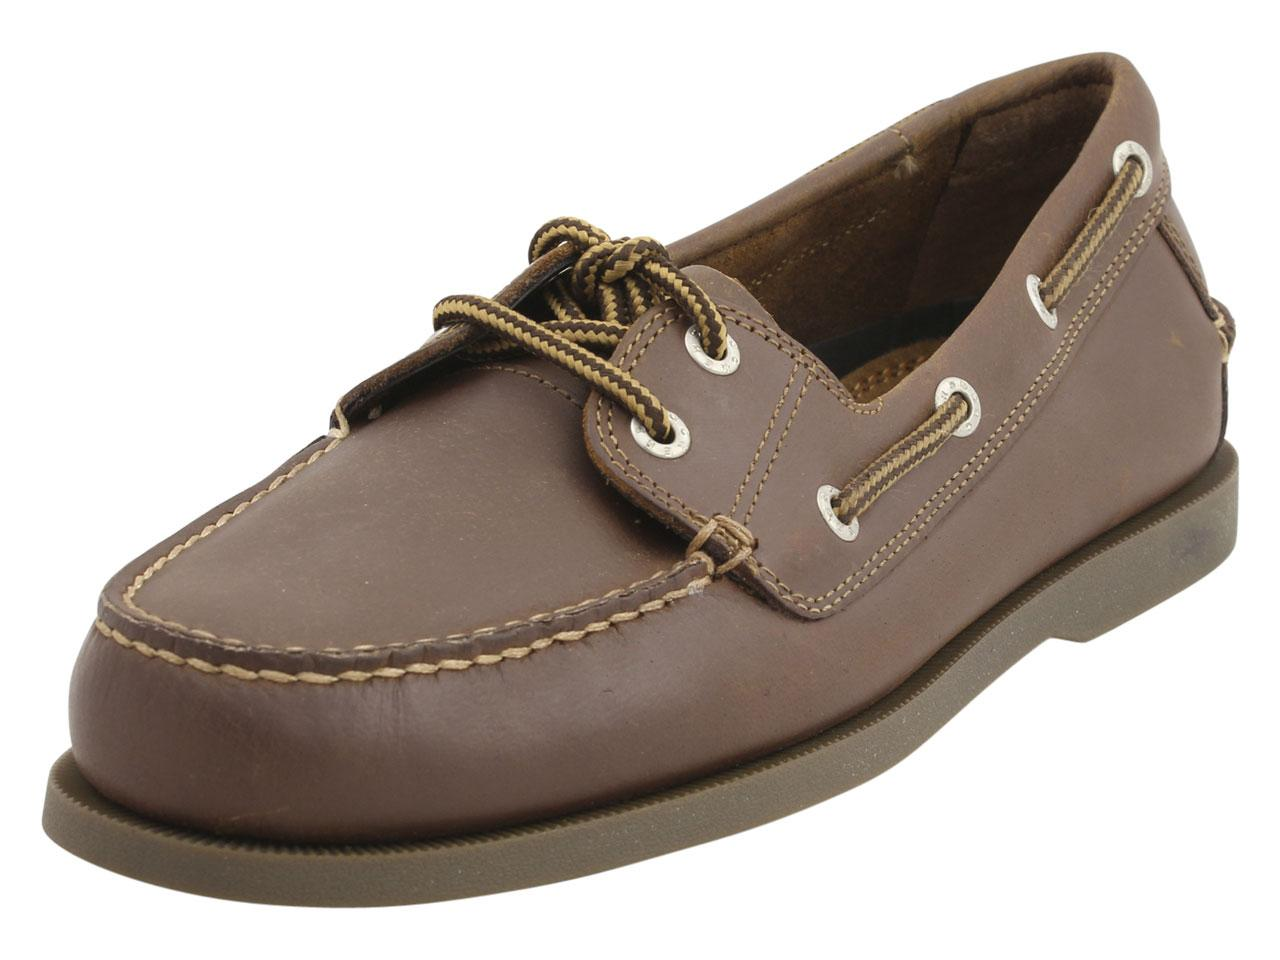 Image of Dockers Men's Vargas Loafers Boat Shoes - Brown - 10.5 D(M) US